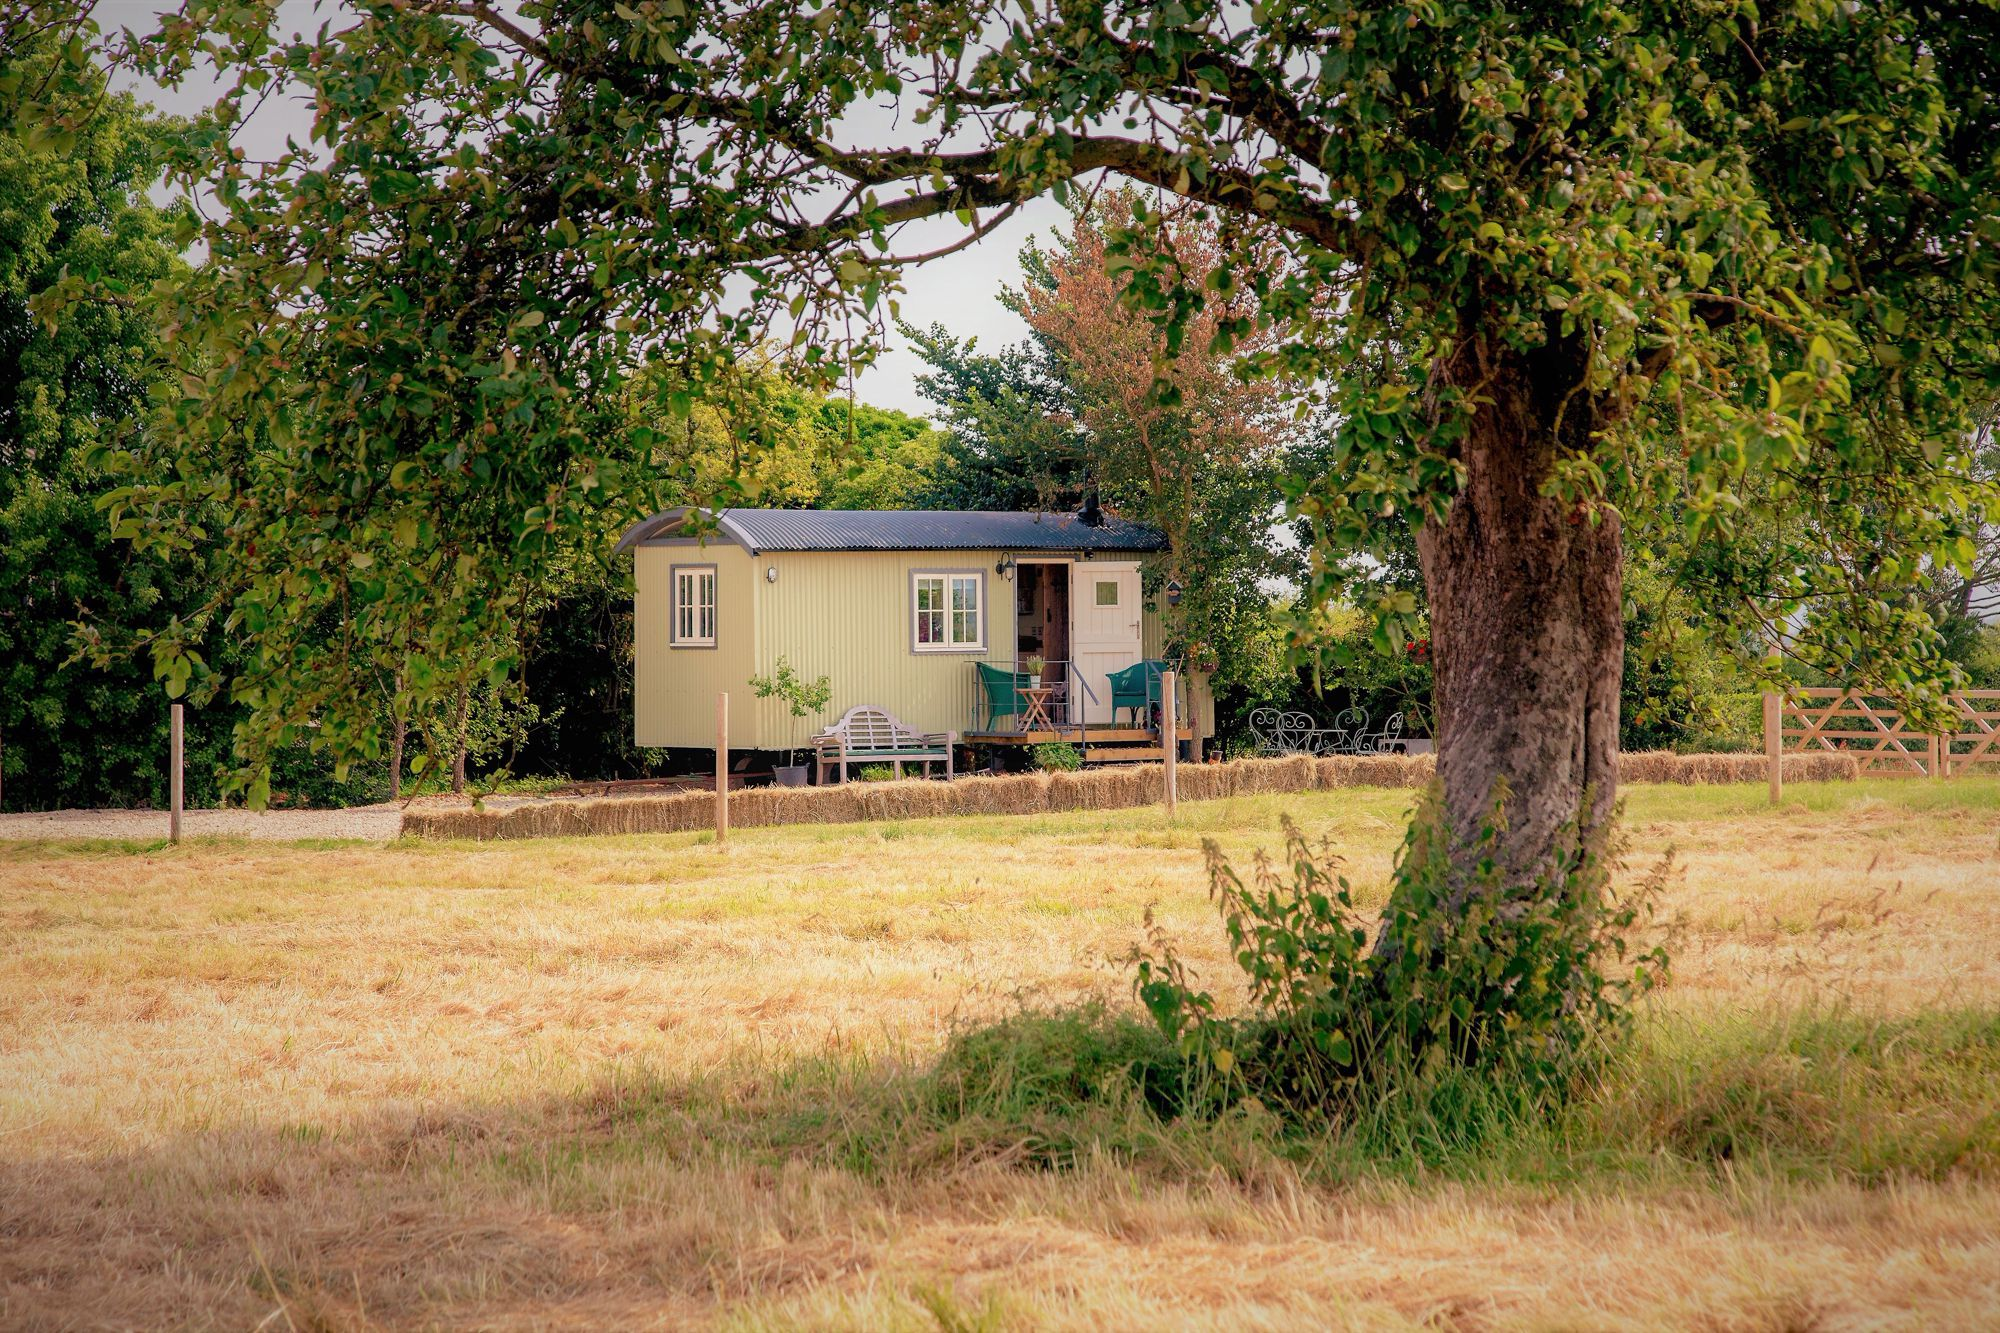 Shepherds Huts – The Best Shepherd Hut Campsites for Glamping Holidays